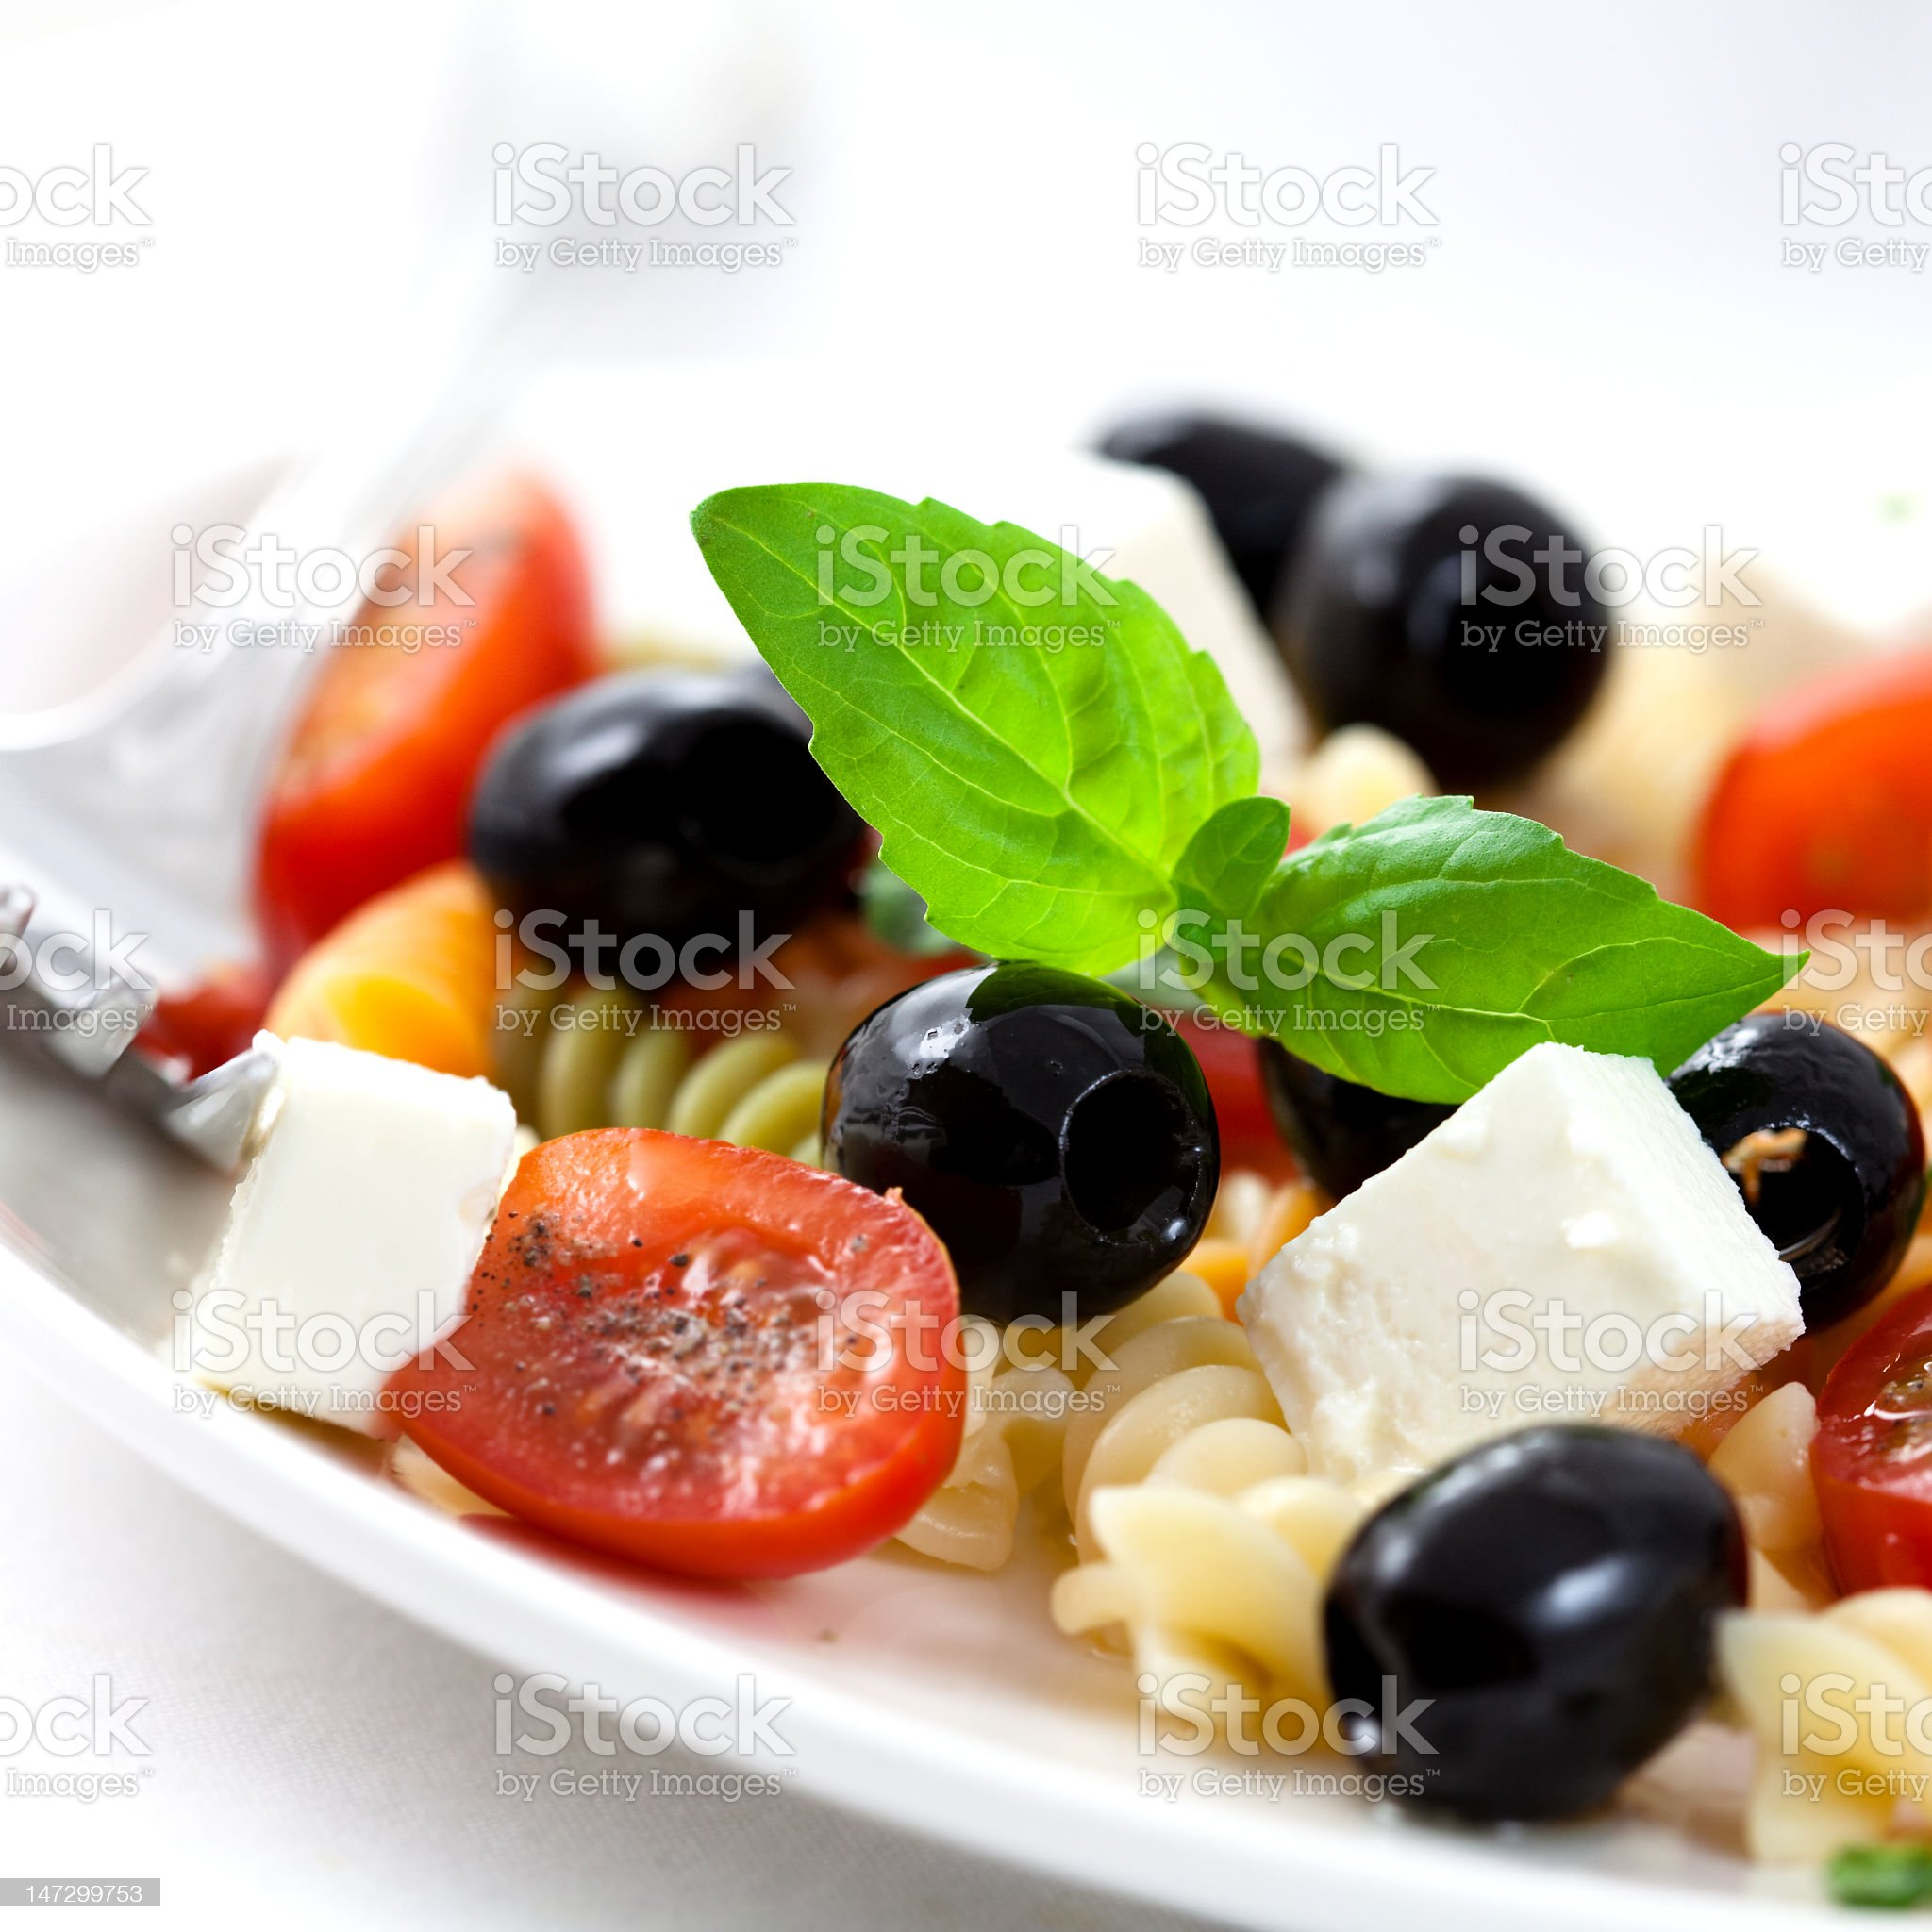 A delicious tomato herb and cheese pasta salad royalty-free stock photo